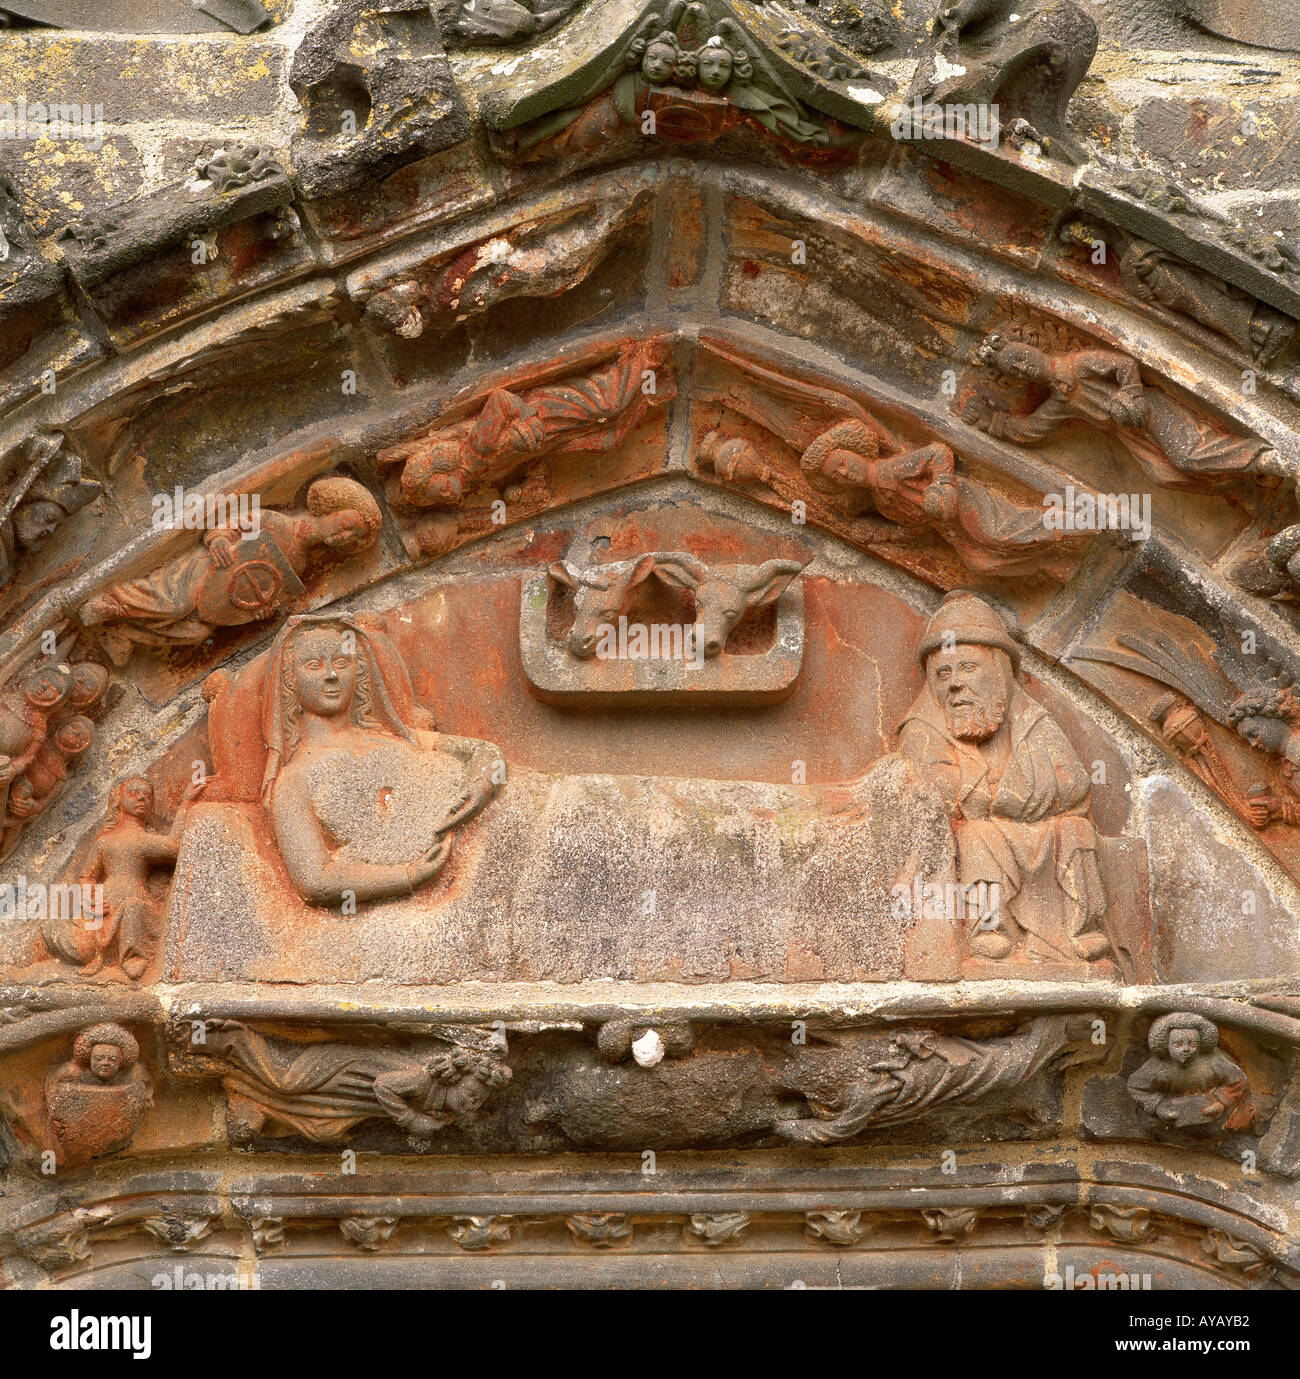 Sculptural relief above a doorway, La Martyre, Brittany. Depicts Mary and Joseph in the stable surrounded by angels. - Stock Image